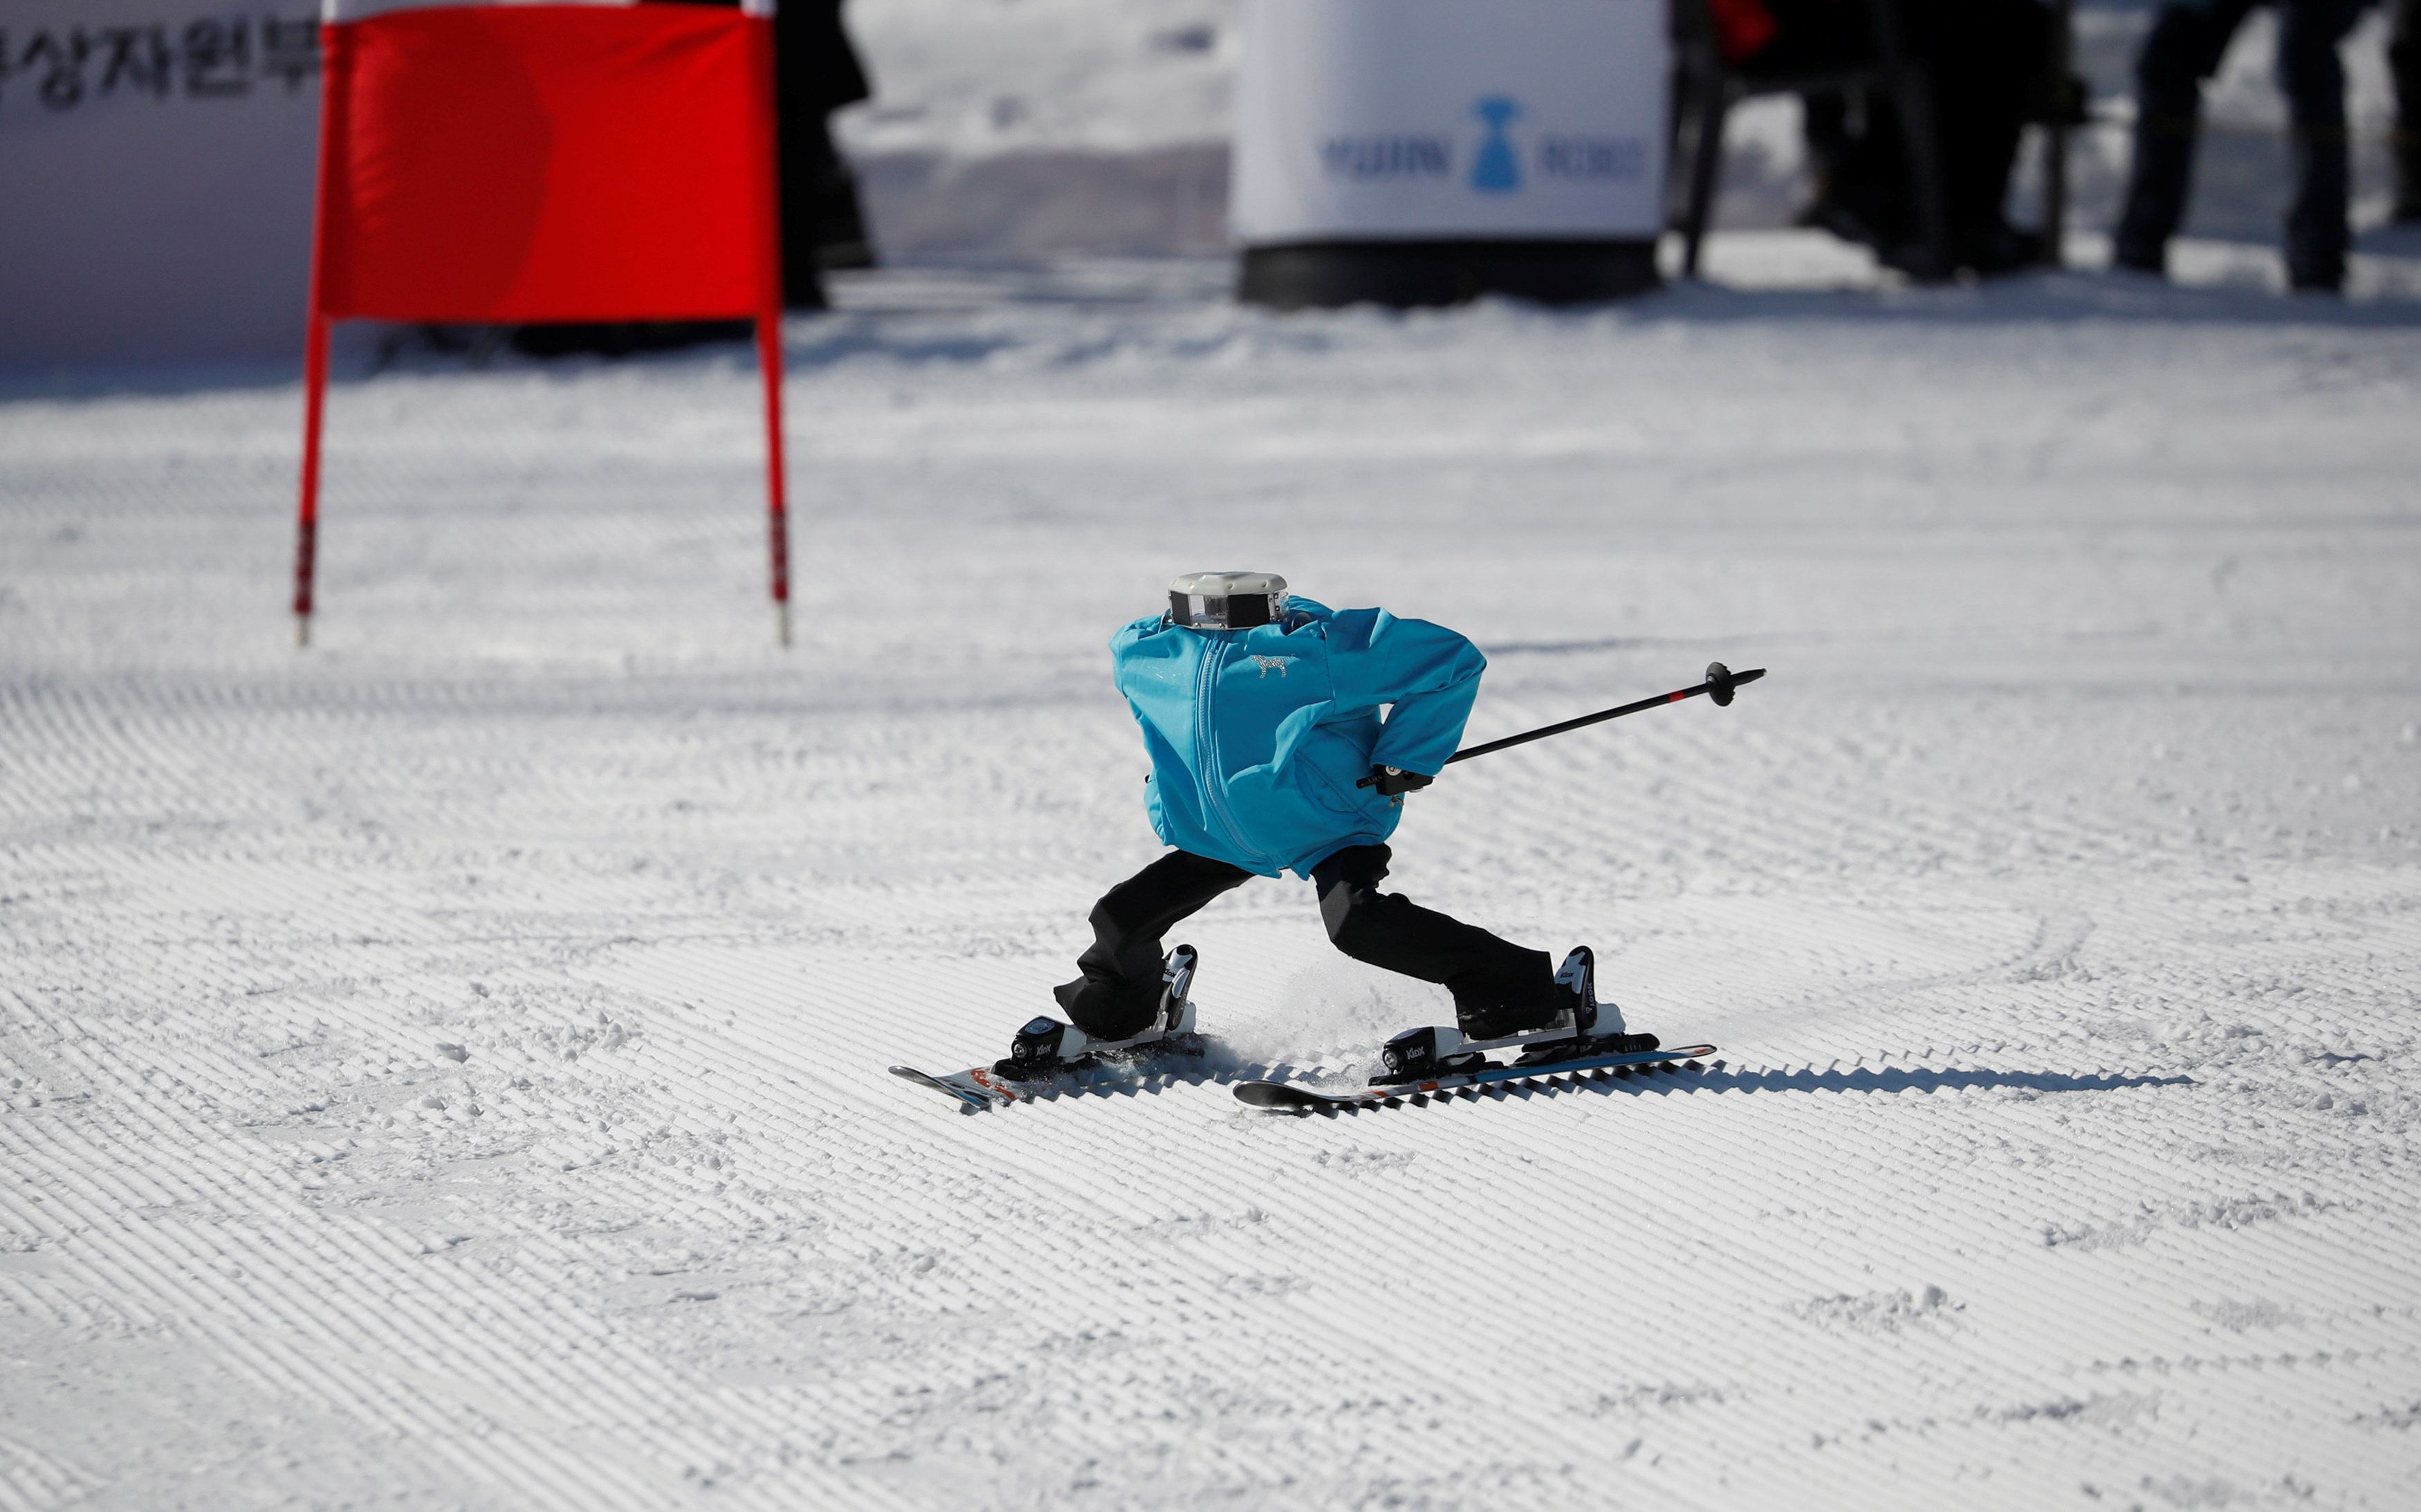 The World's First Robot Ski Olympics Was Truly Bizarre, And We Loved